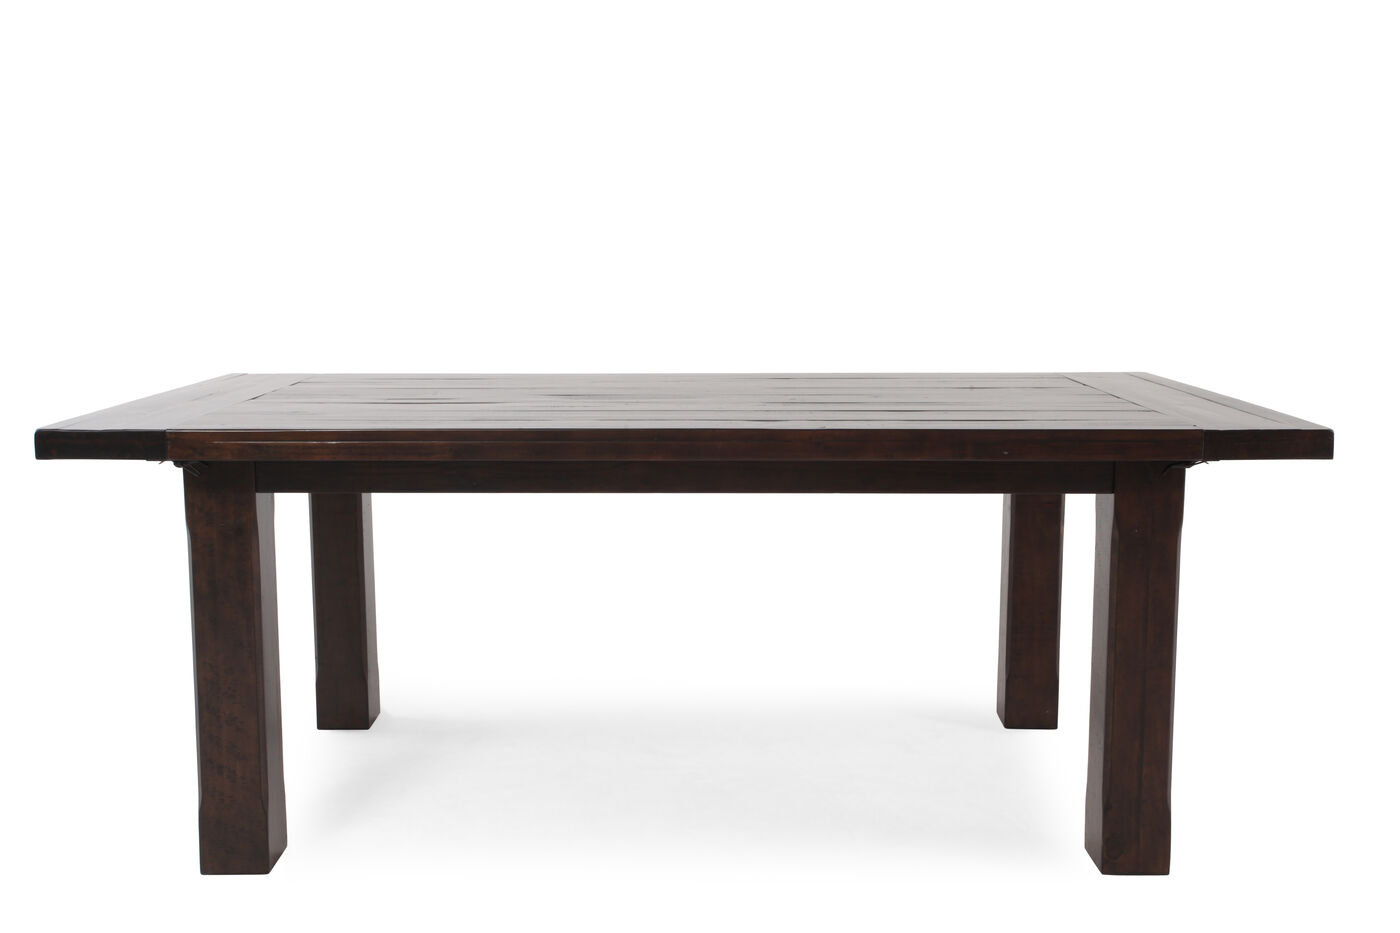 transitional 80 to 112 planed top dining table in rustic